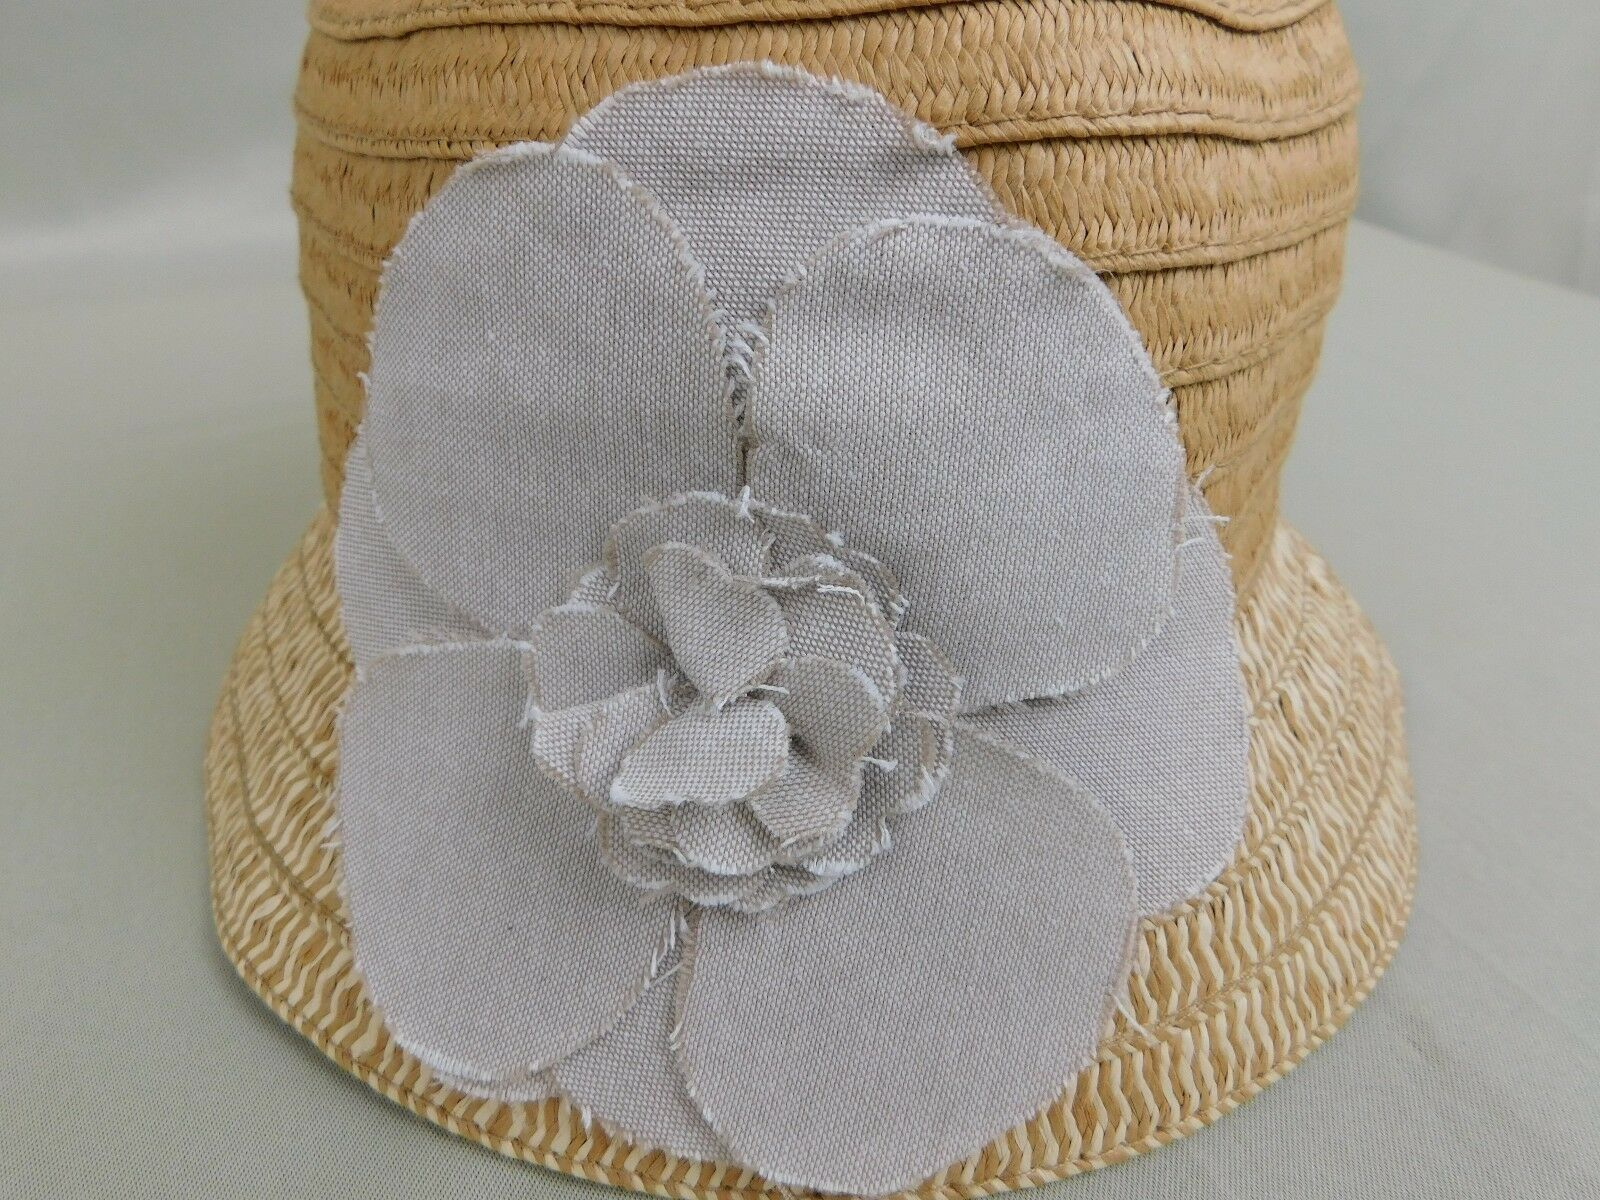 NWT August Hat Company Tan Natural Cloche Hat Flower Floral Accent OS